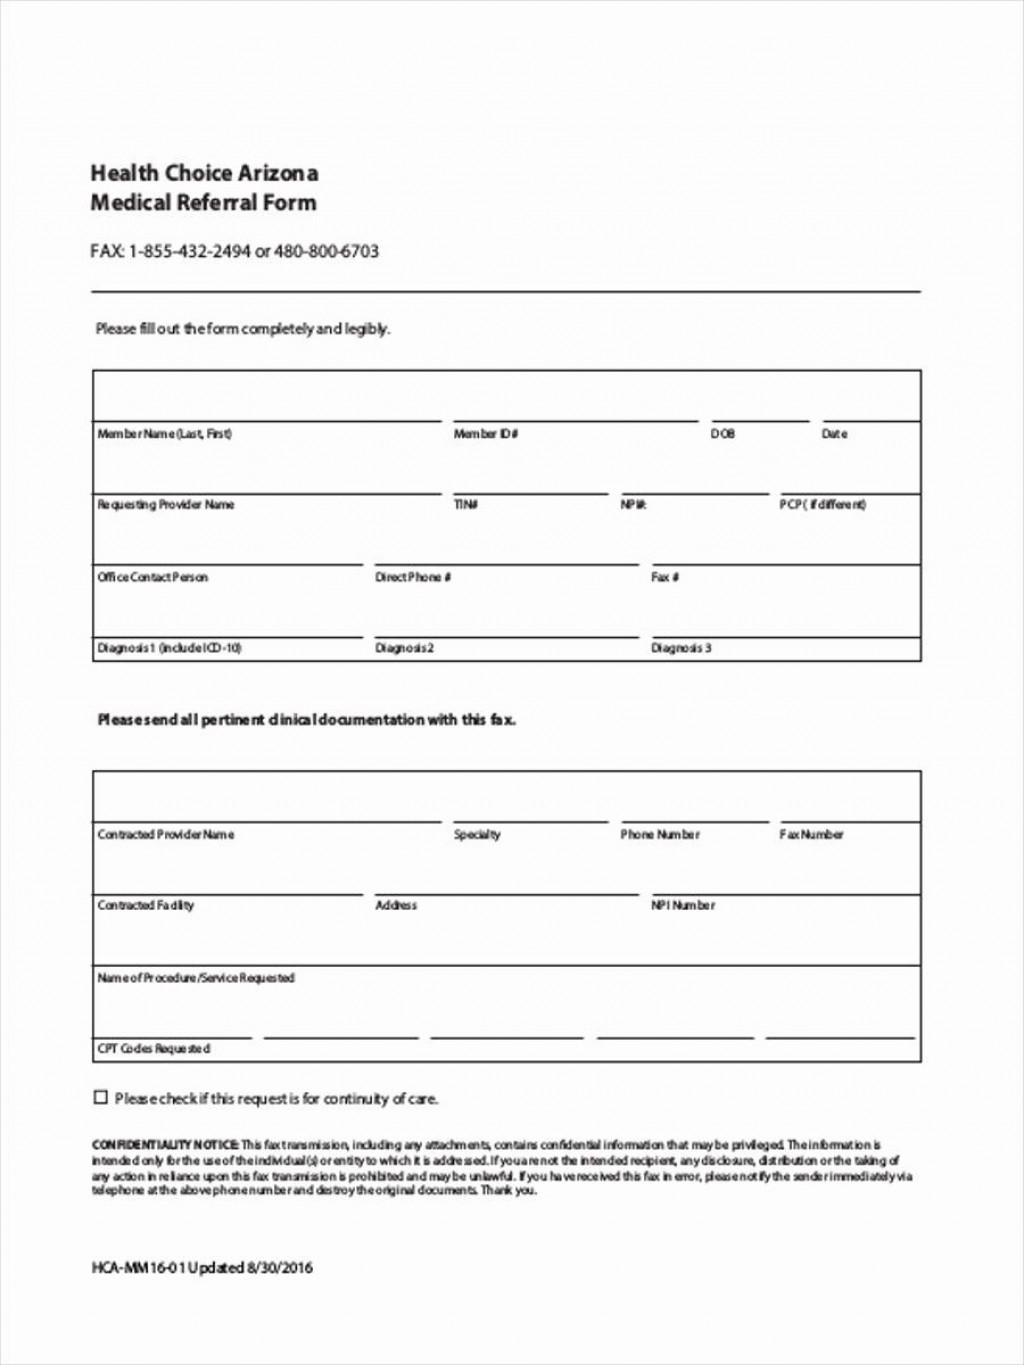 001 Singular Medical Referral Form Template High Resolution  Dental Patient Doctor Free PhysicianLarge